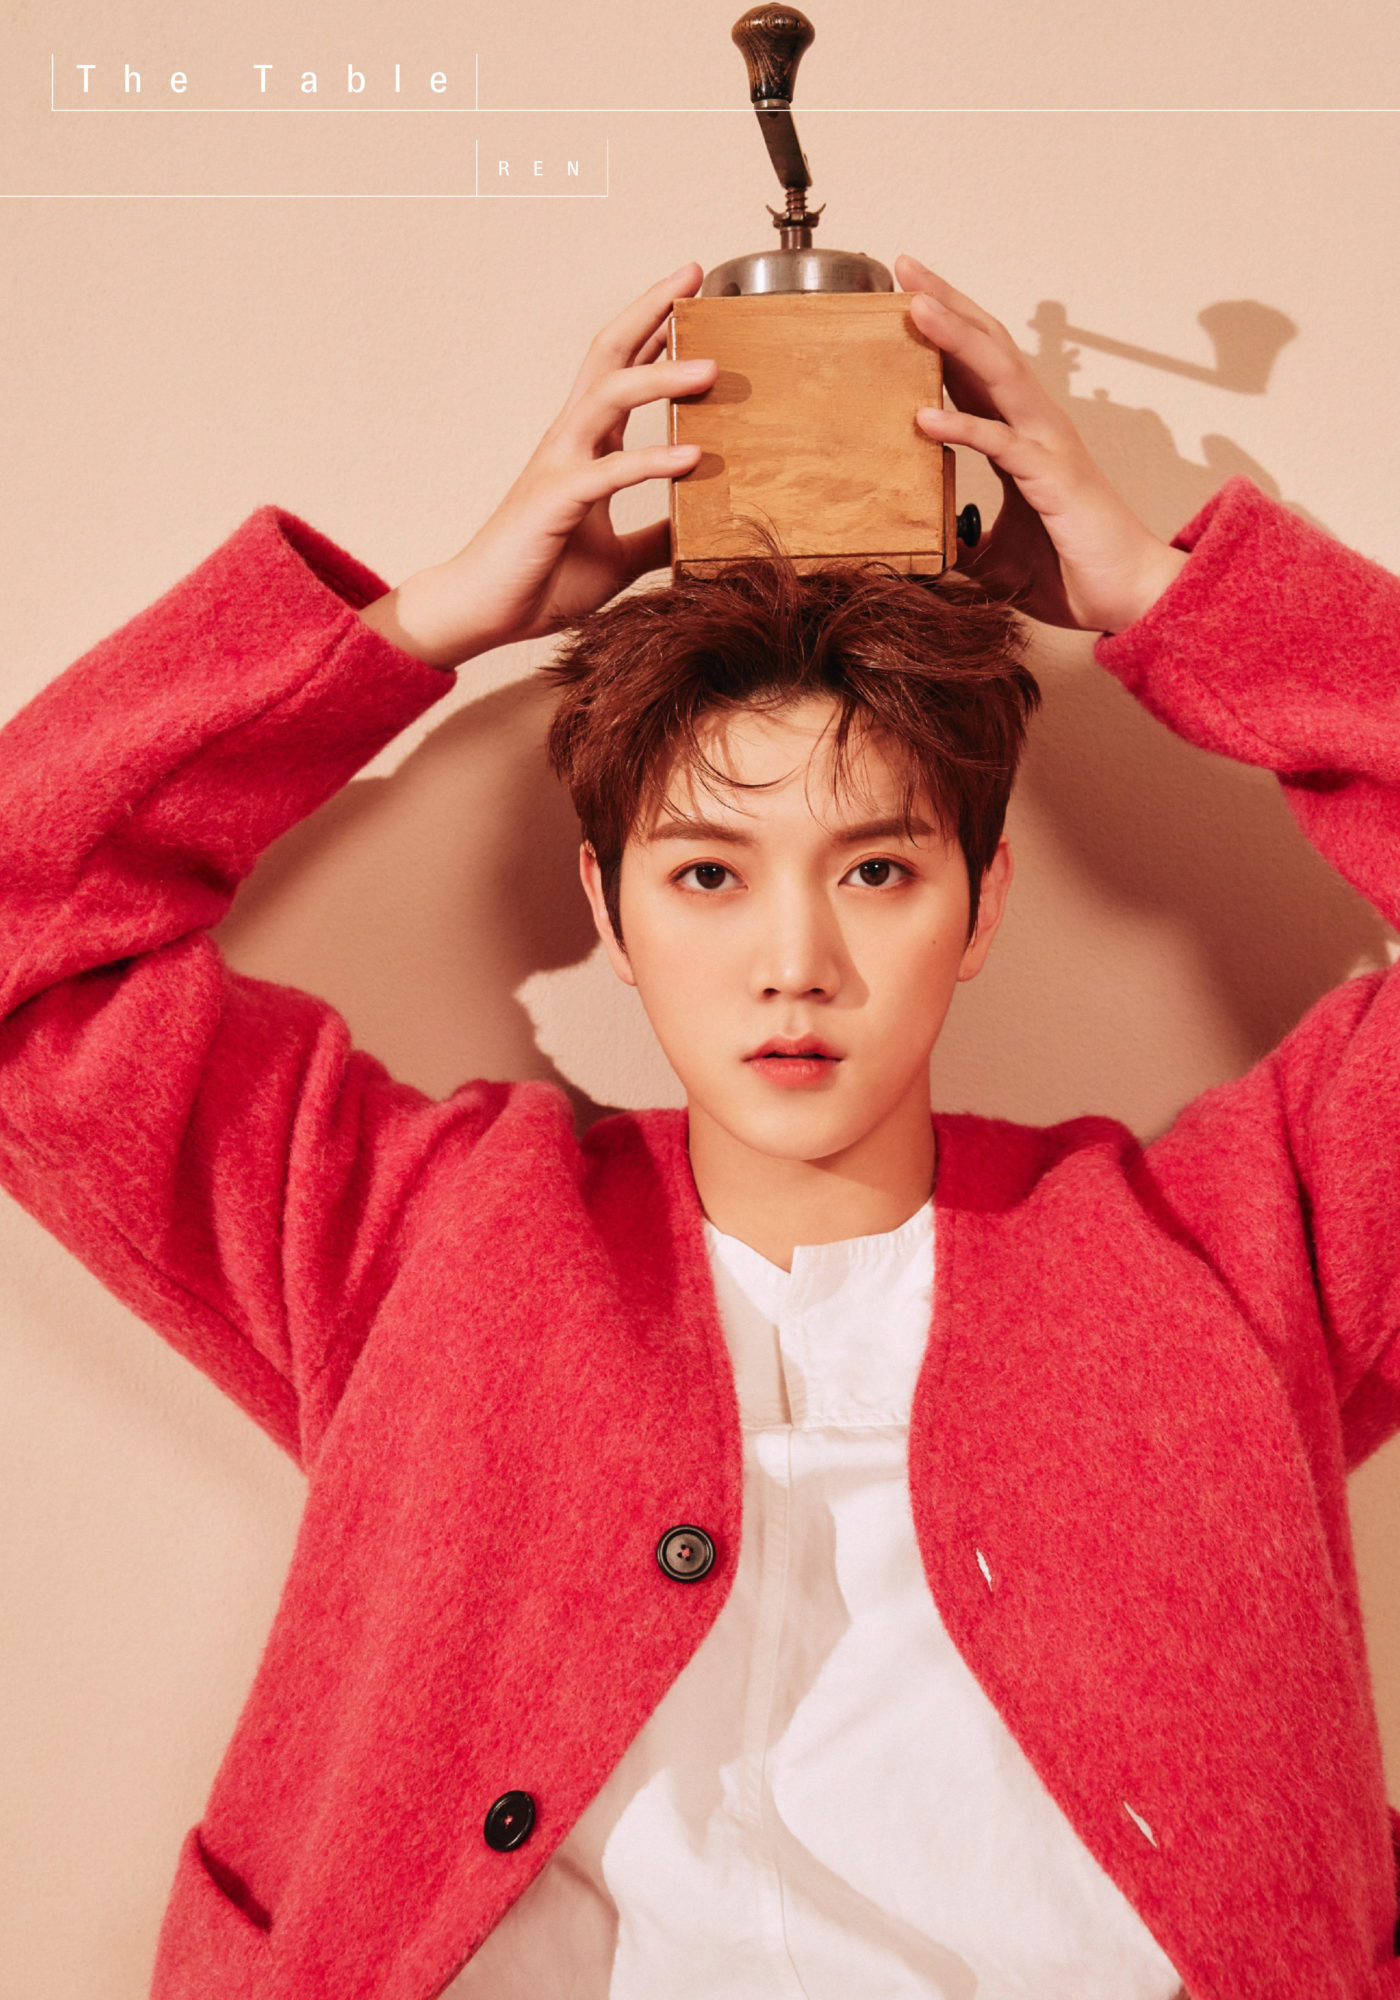 NU'EST Ren The Table Concept